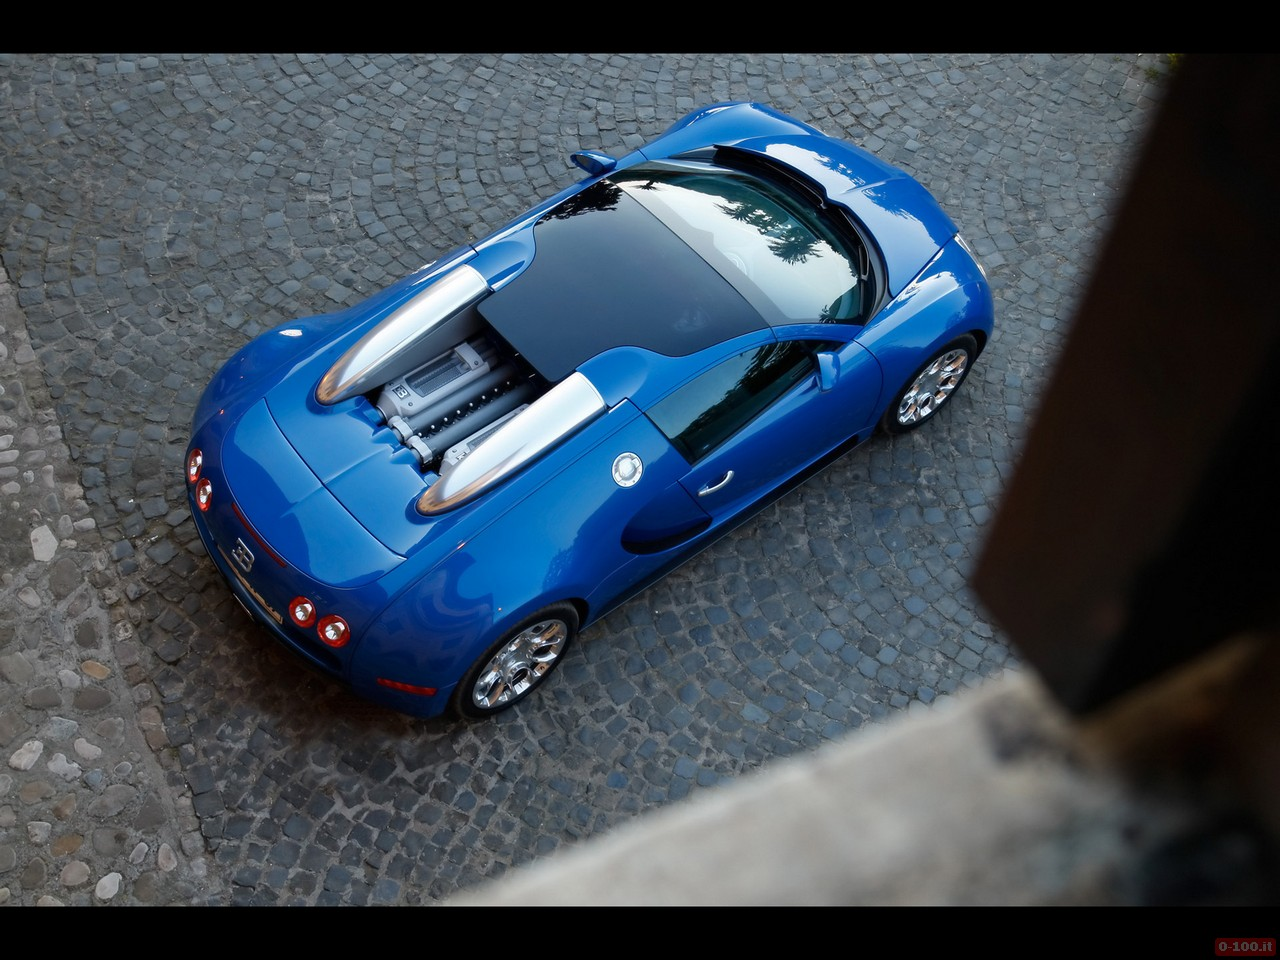 bugatti_veyron_super-grand-sport-1600-hp_0-100_7